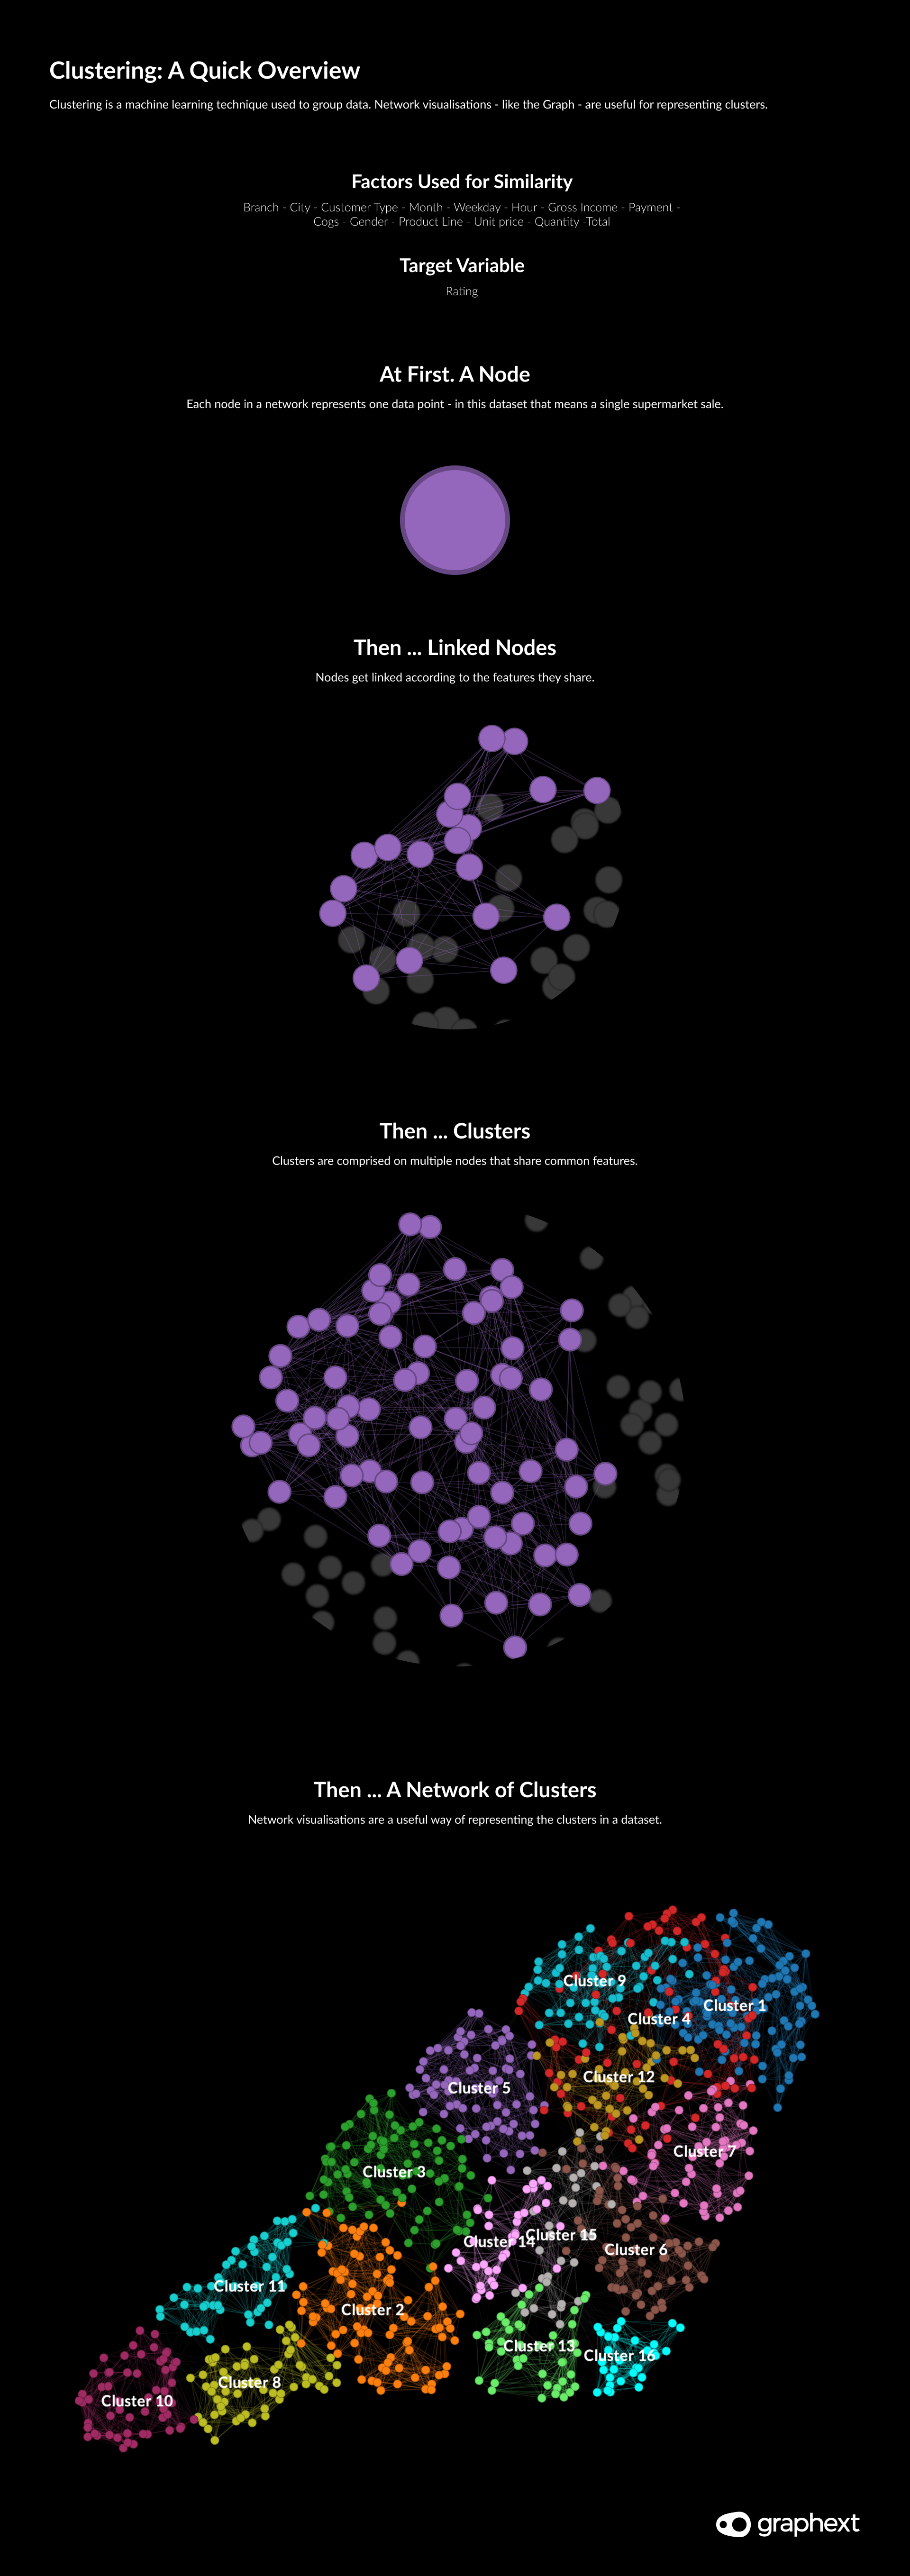 An infographic showing how clustering works as part of linking similar nodes.